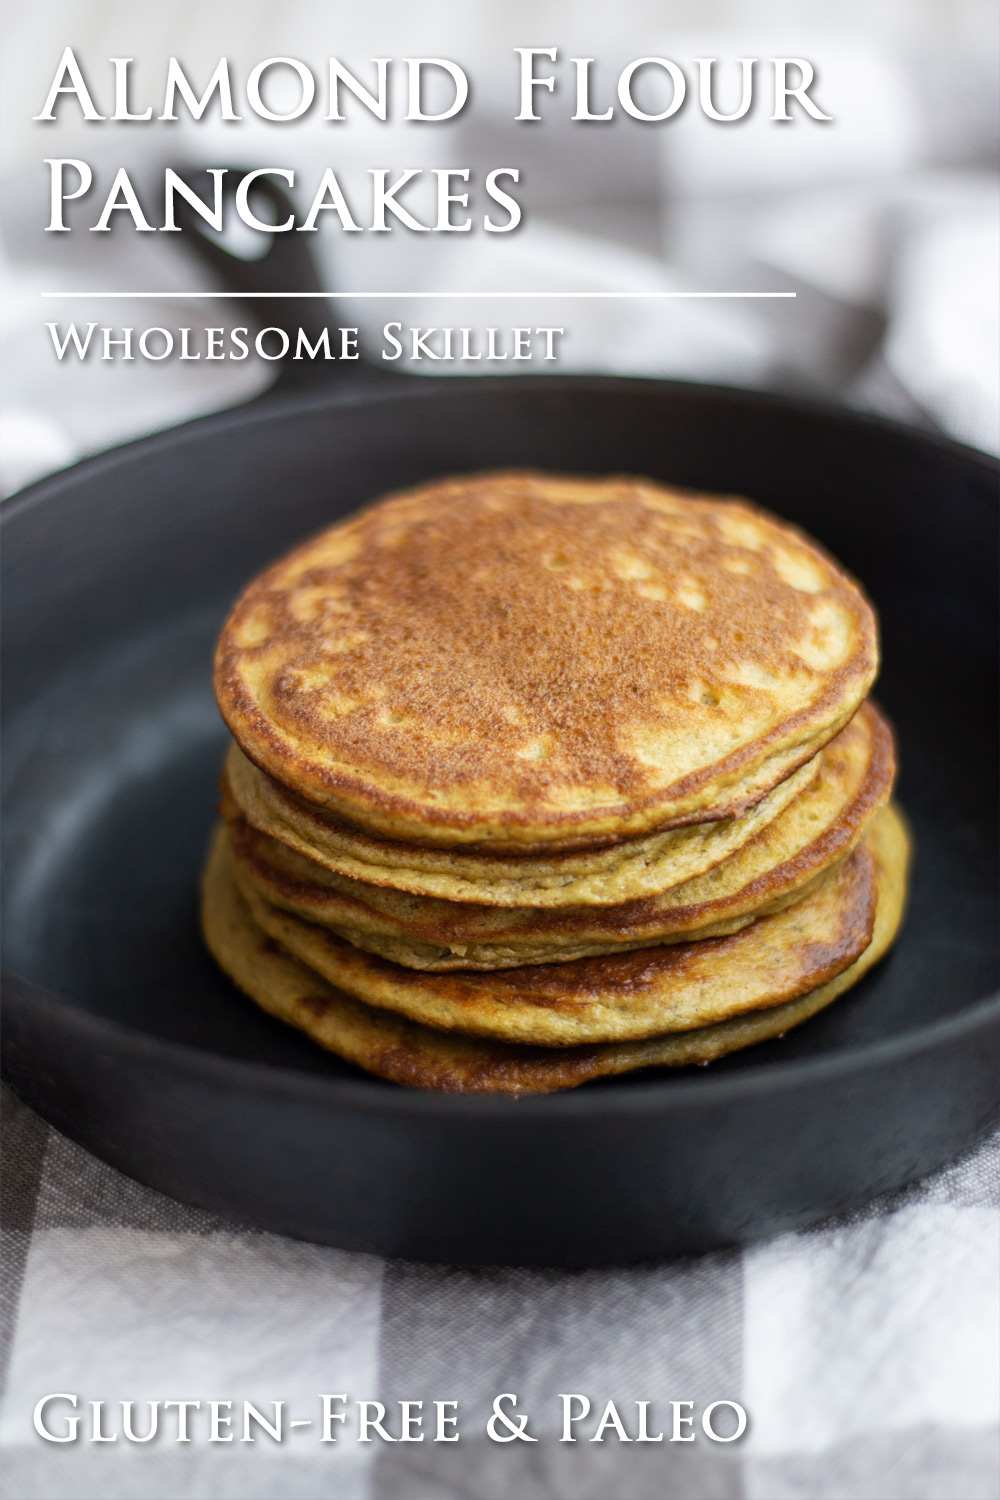 Tasty Almond Flour Pancakes | Wholesome Skillet